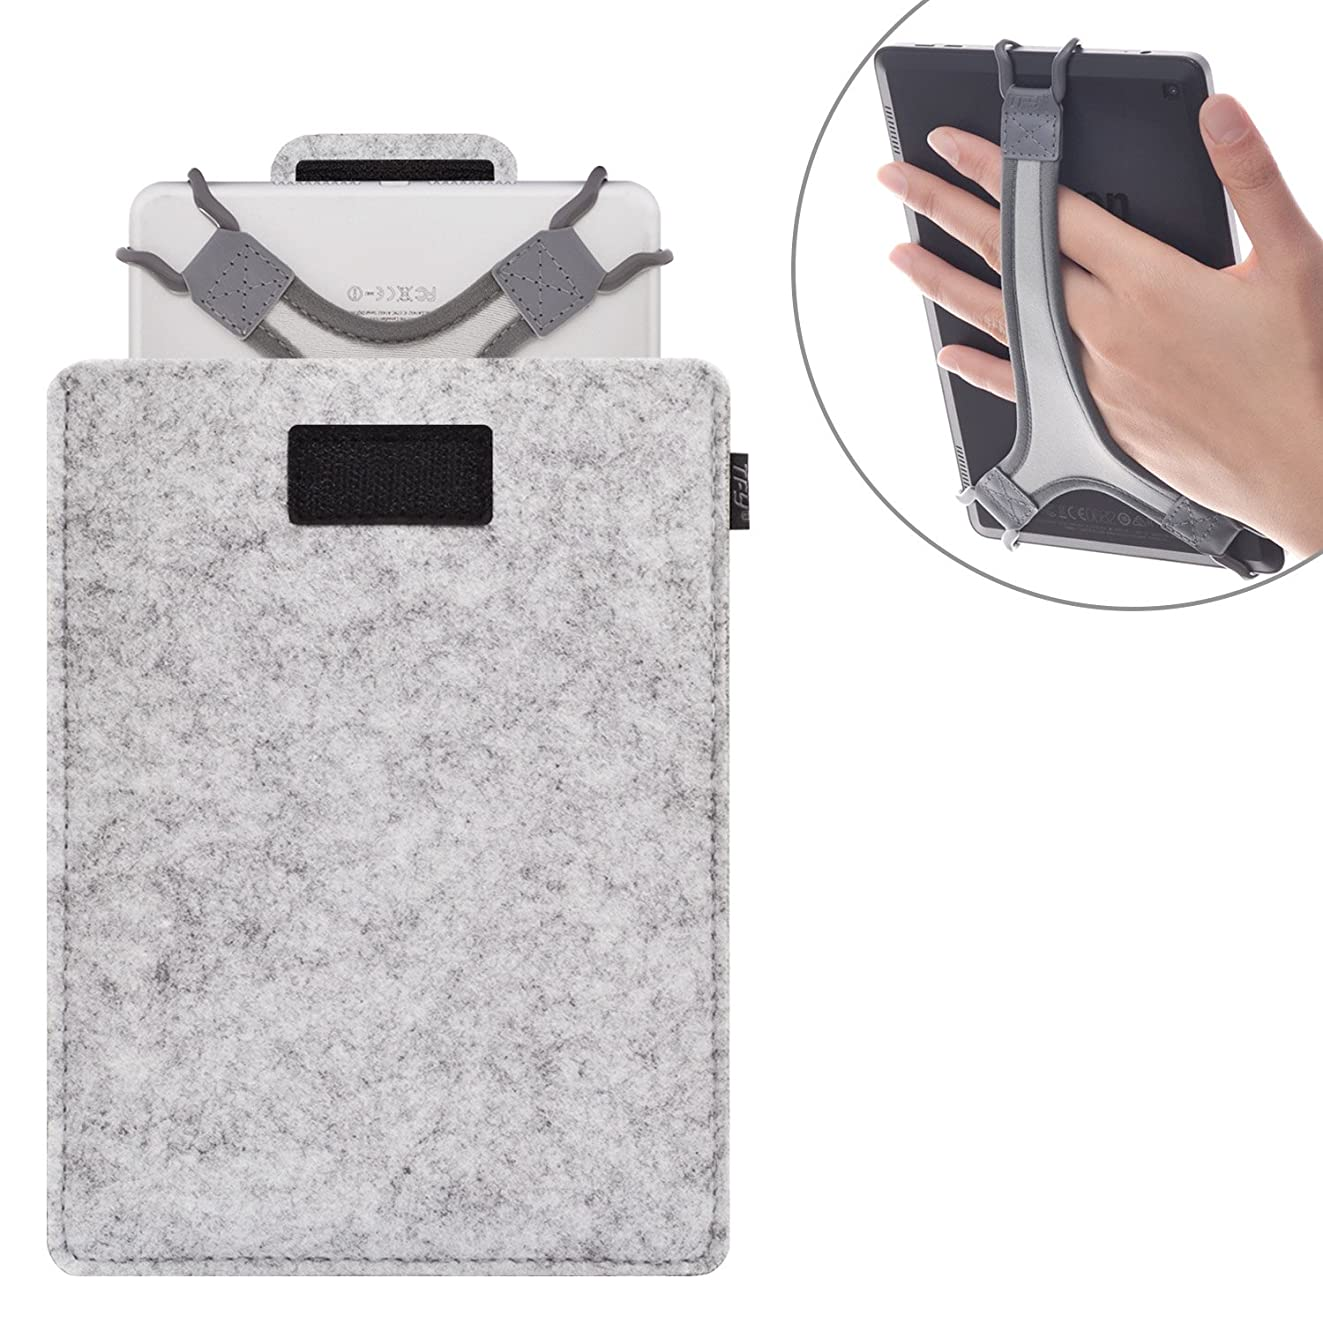 TFY Protective Carrying Pouch Bag (Grey), Plus Bonus Hand Strap Holder for for 9-10 Inch Tablets - iPad Air/iPad Pro 9.7